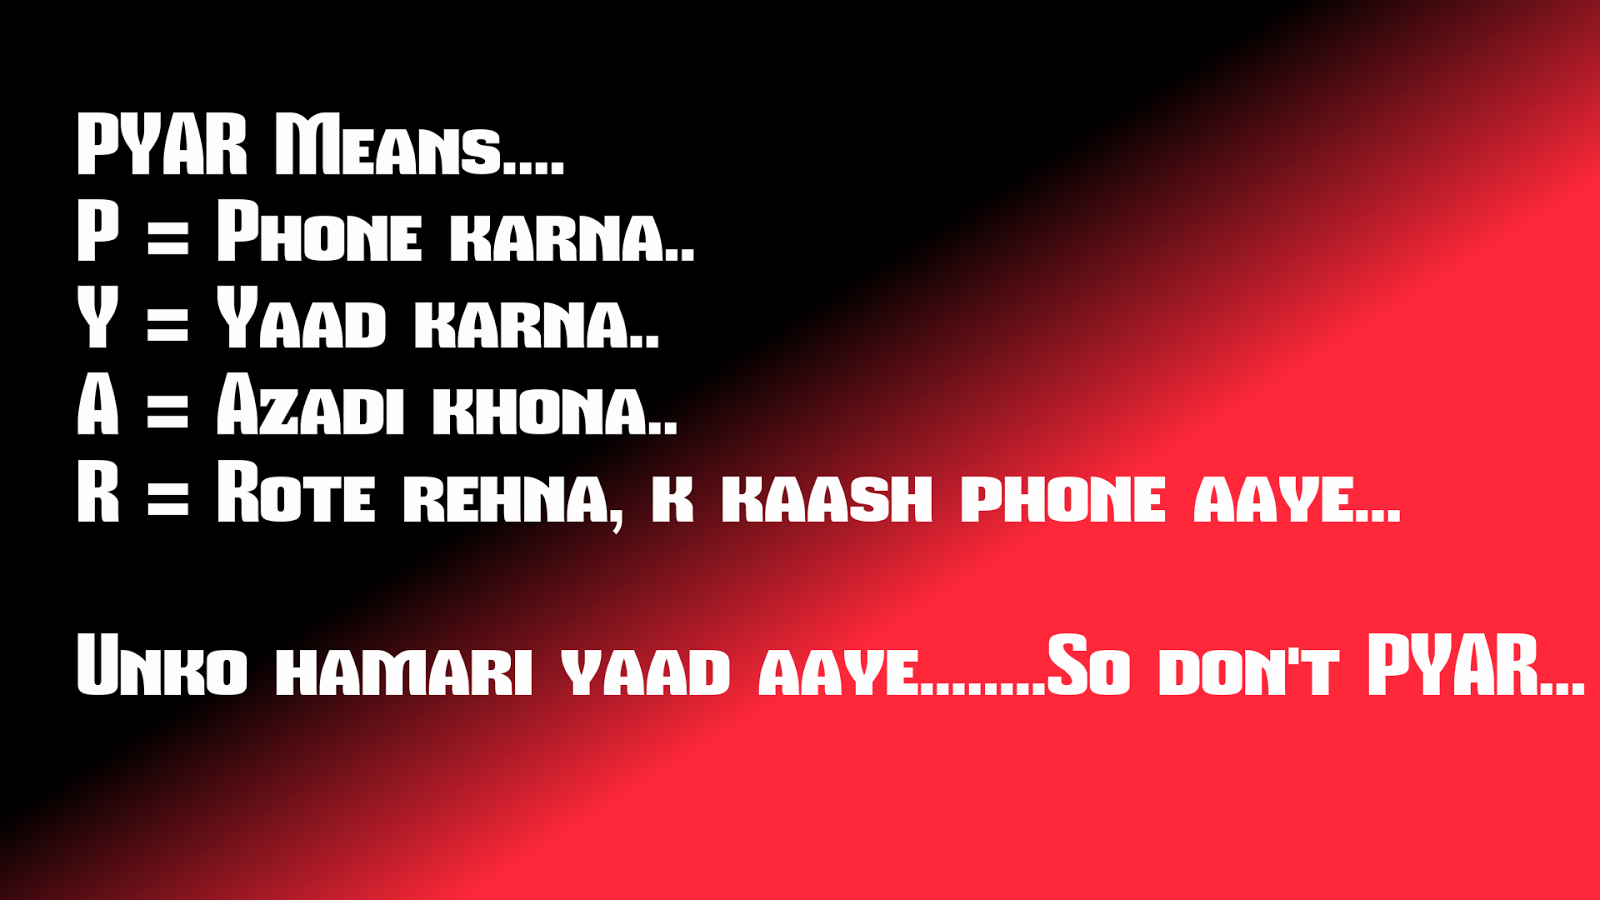 Love Wallpaper And Shayri : Shayari Hi Shayari-Images Download,Dard Ishq,Love,Zindagi ...